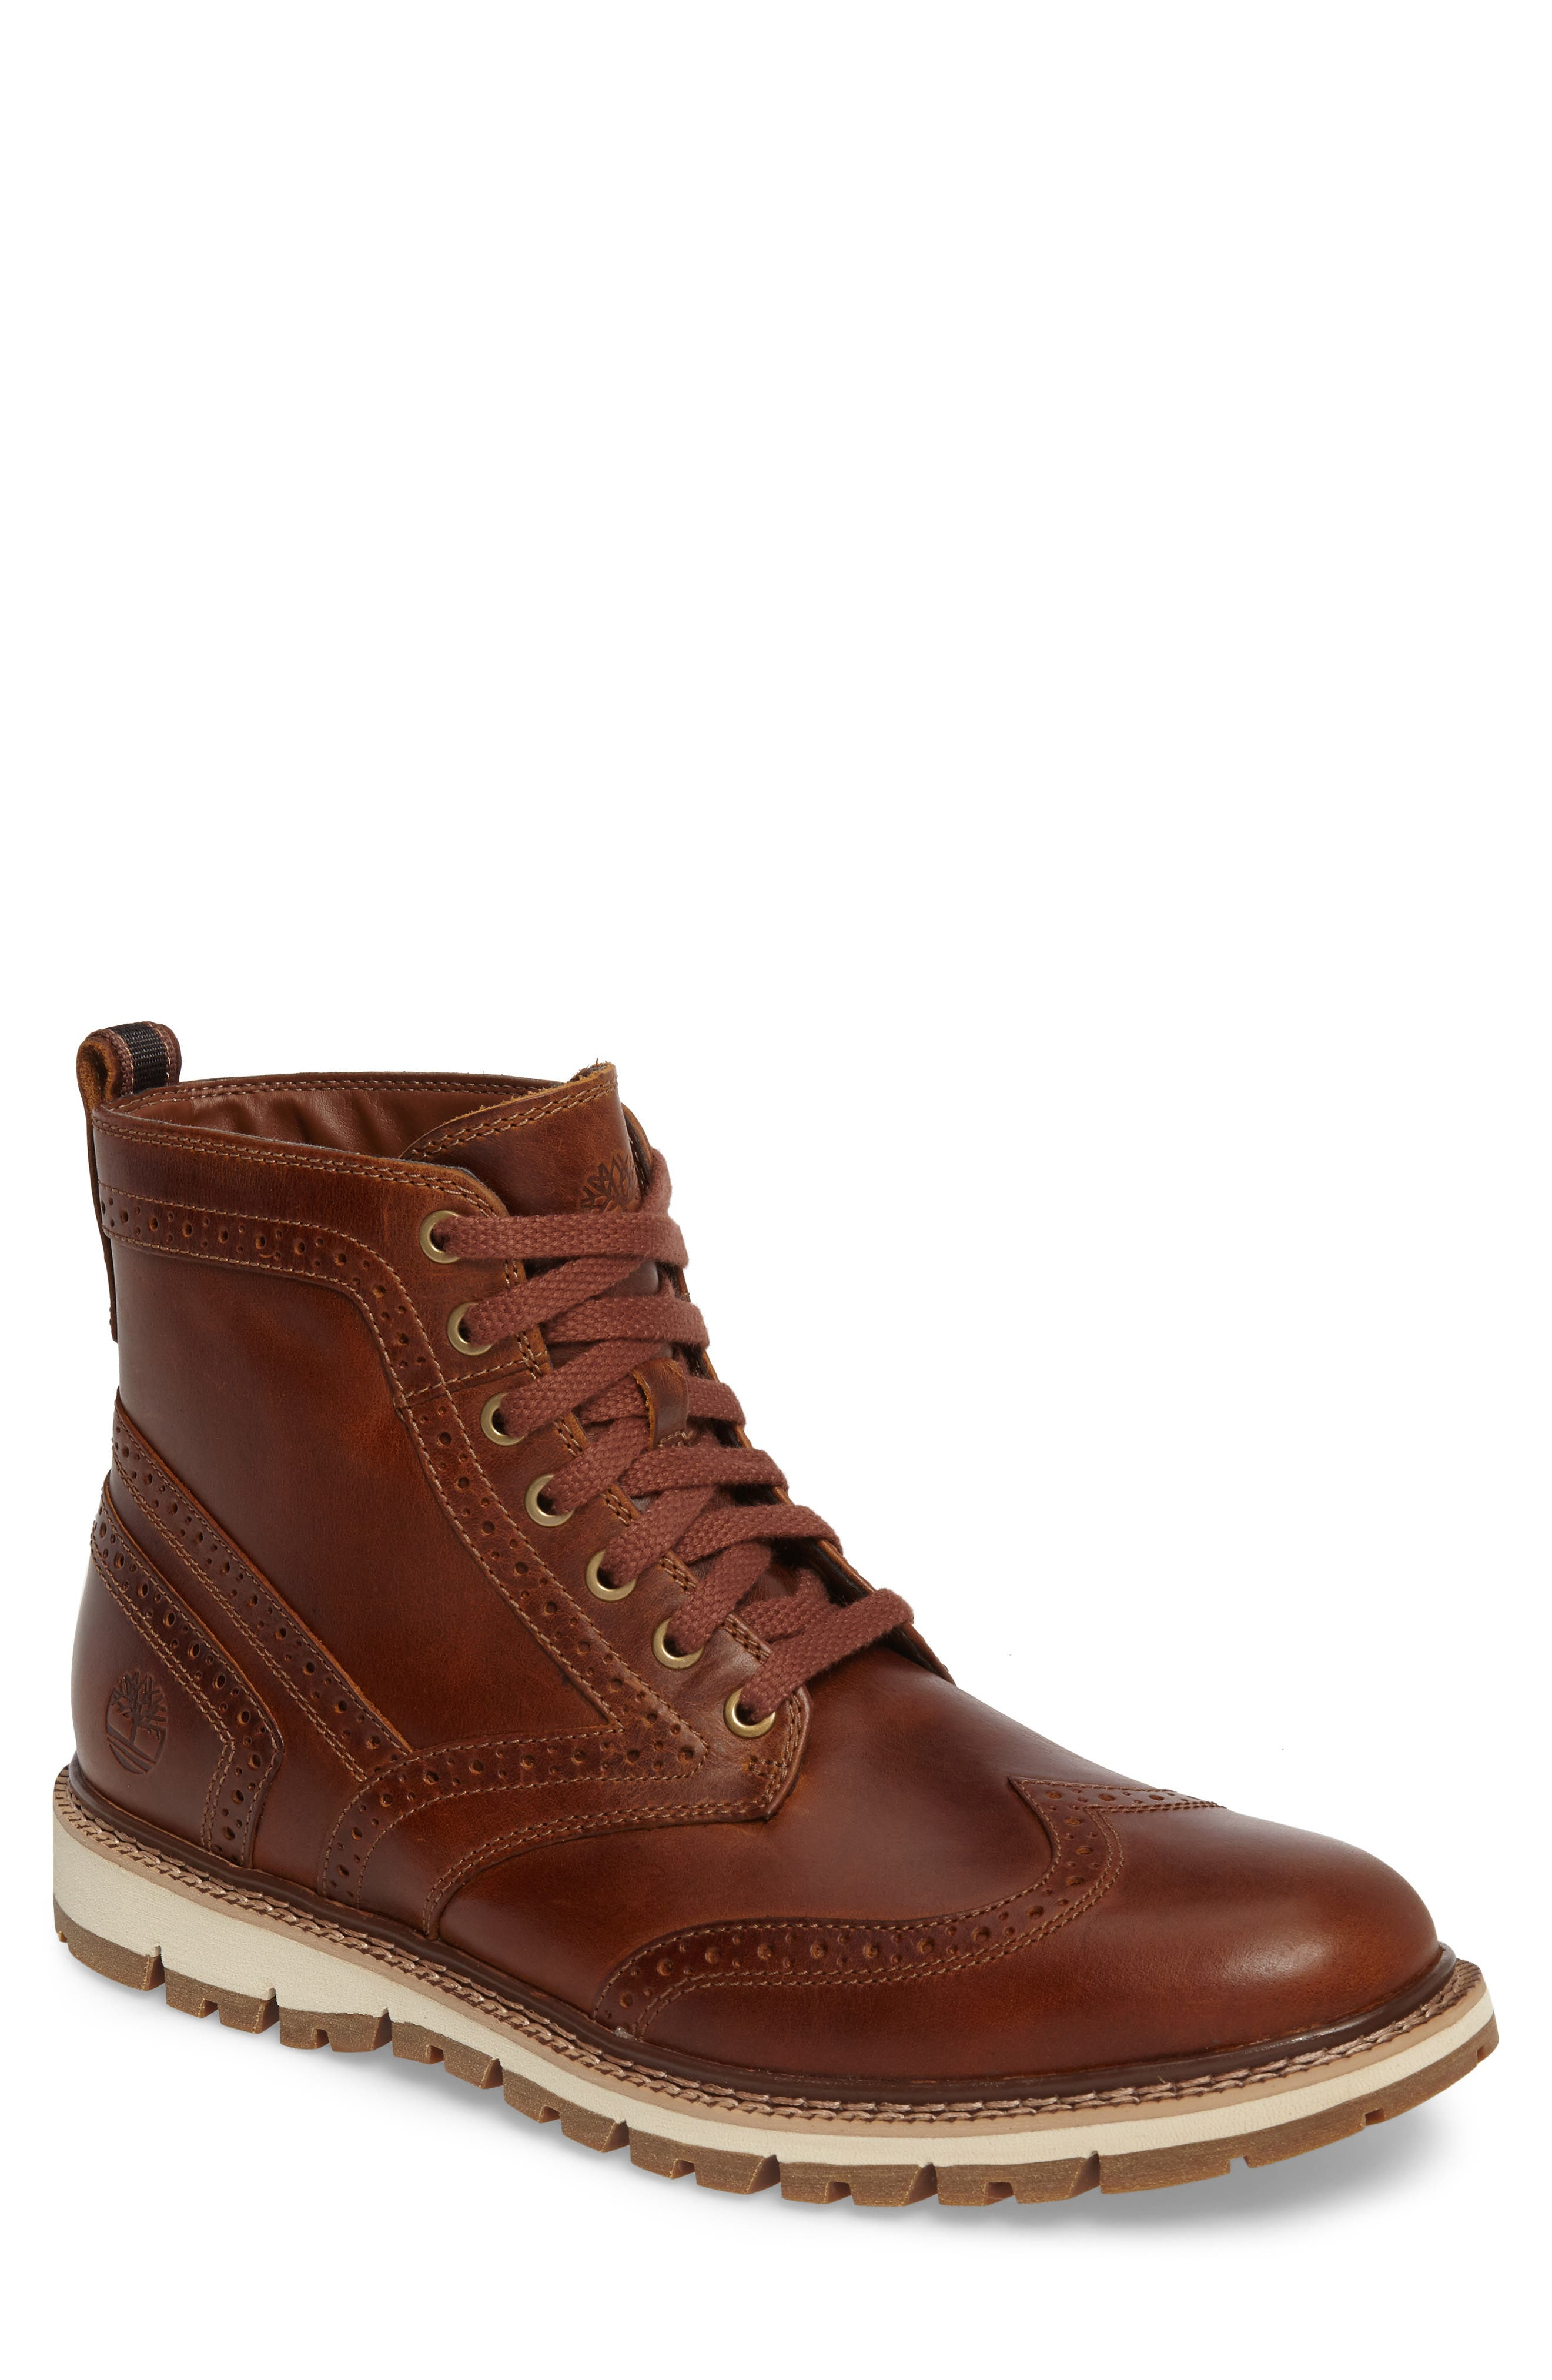 Alternate Image 1 Selected - Timberland Britton Hill Wingtip Boot (Men)